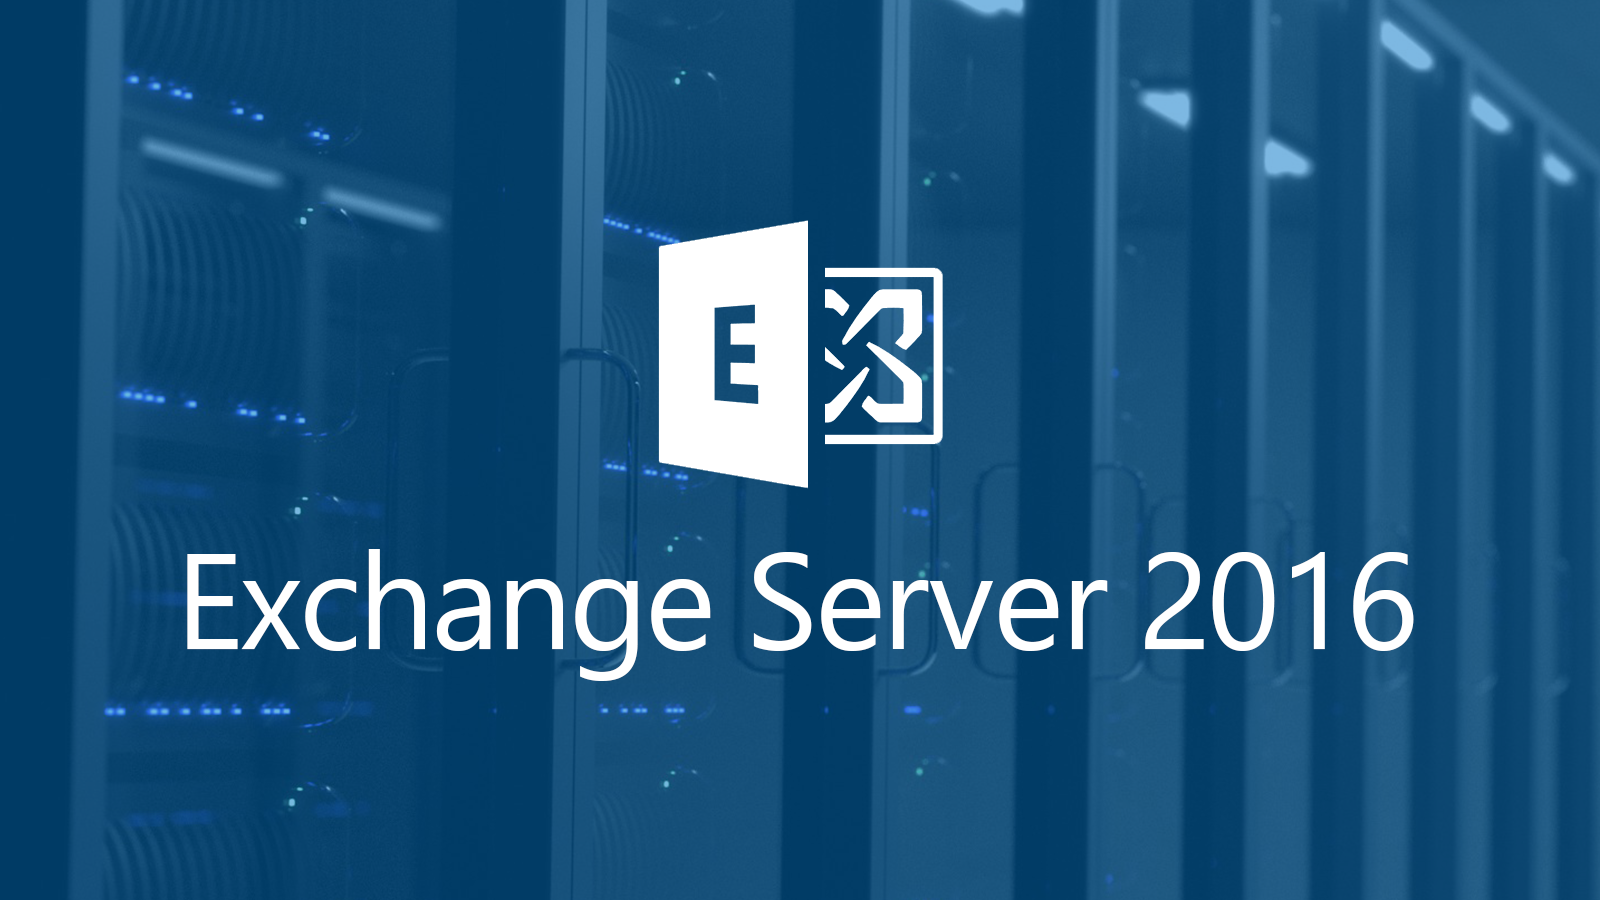 Ahead4 Exchange Server 2016 Upgrade